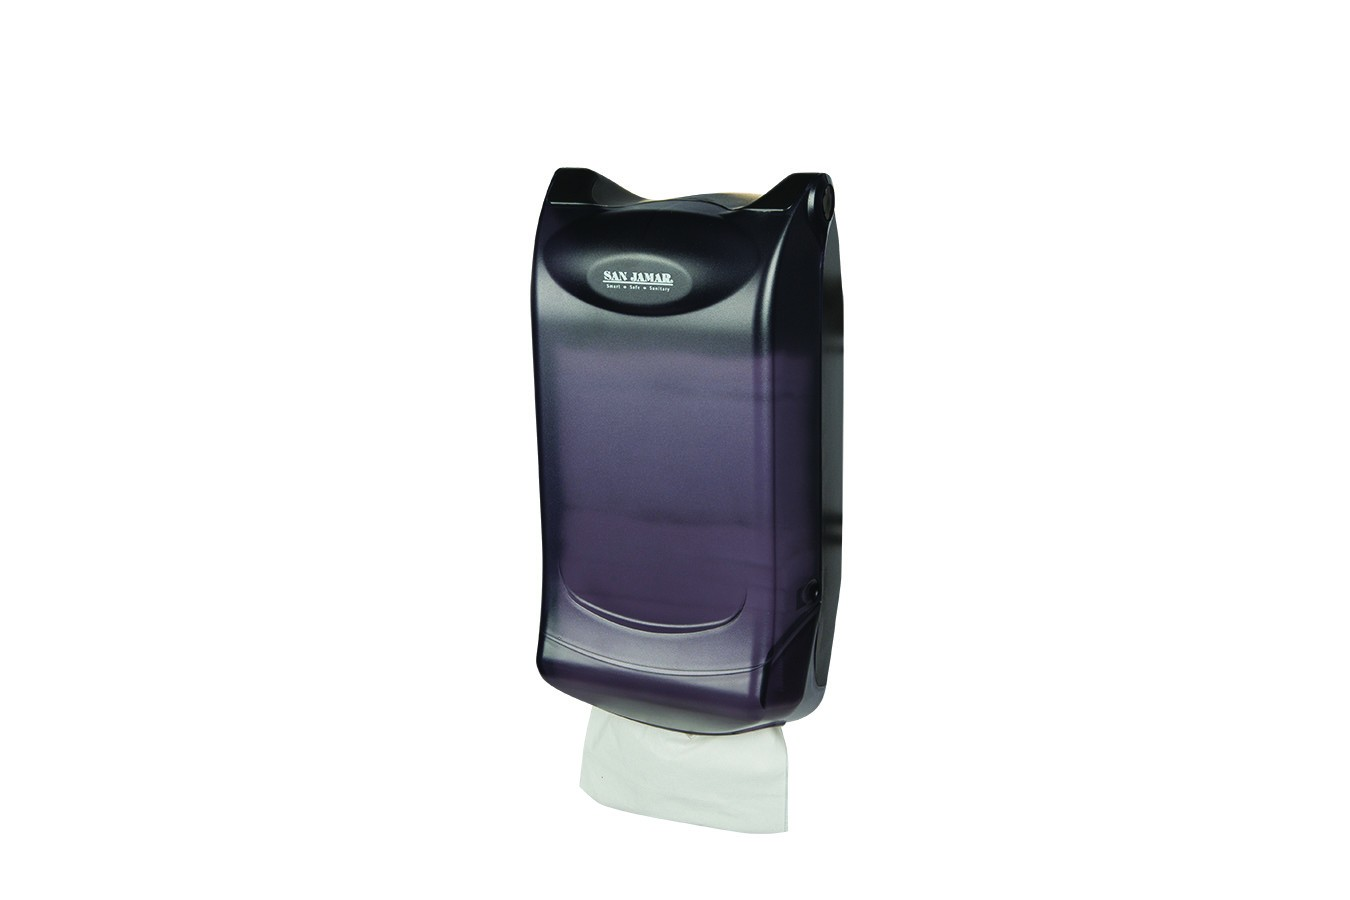 San Jamar H5003PTBK Black Pearl Venue Wall Mount 600 Interfold Napkin Dispenser